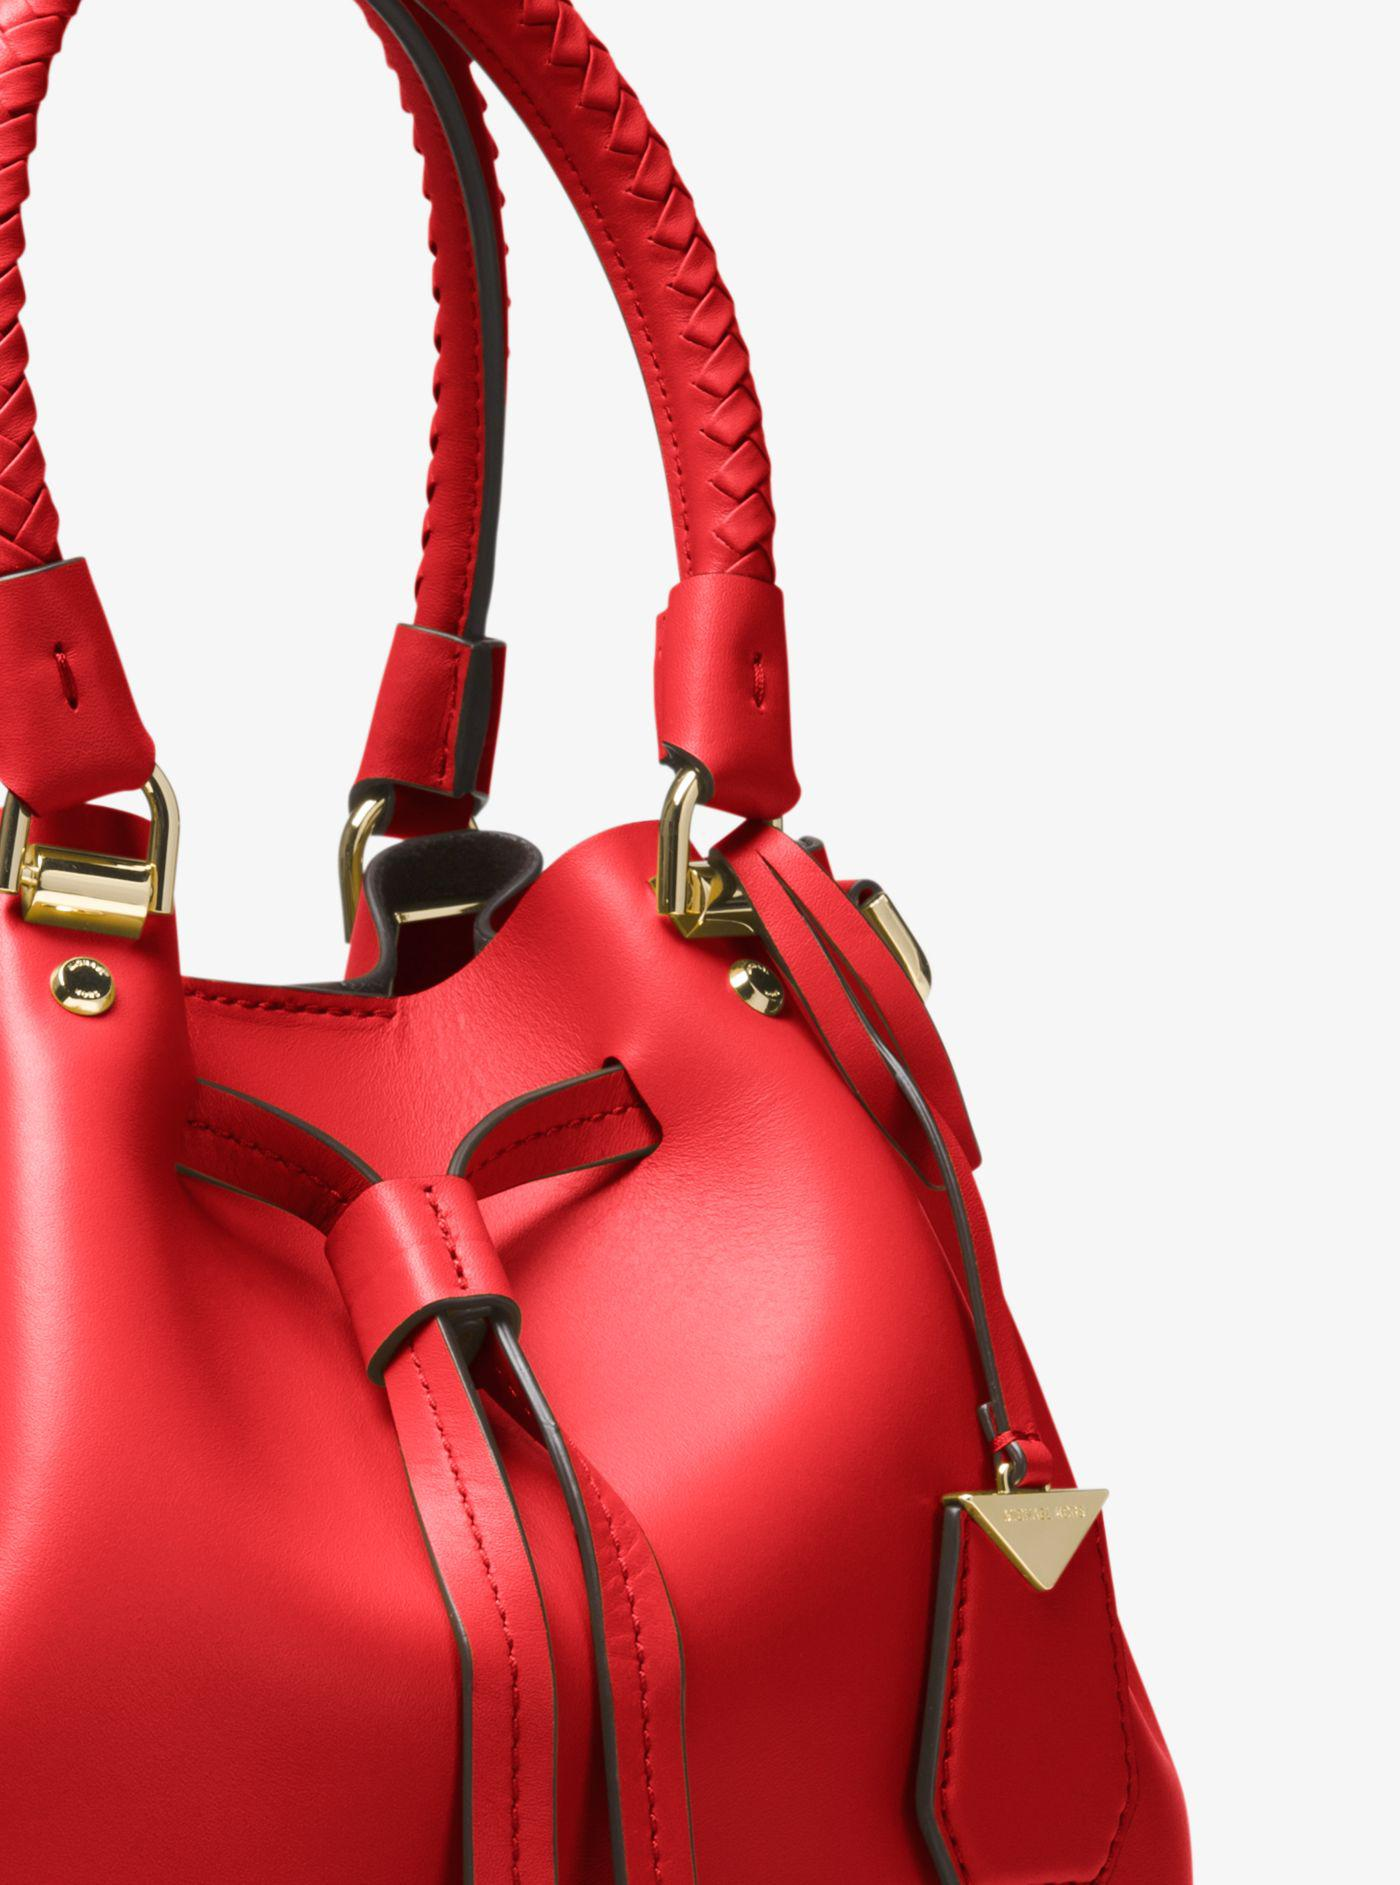 bc648f35d Michael Kors Blakely Leather Bucket Bag in Red - Lyst